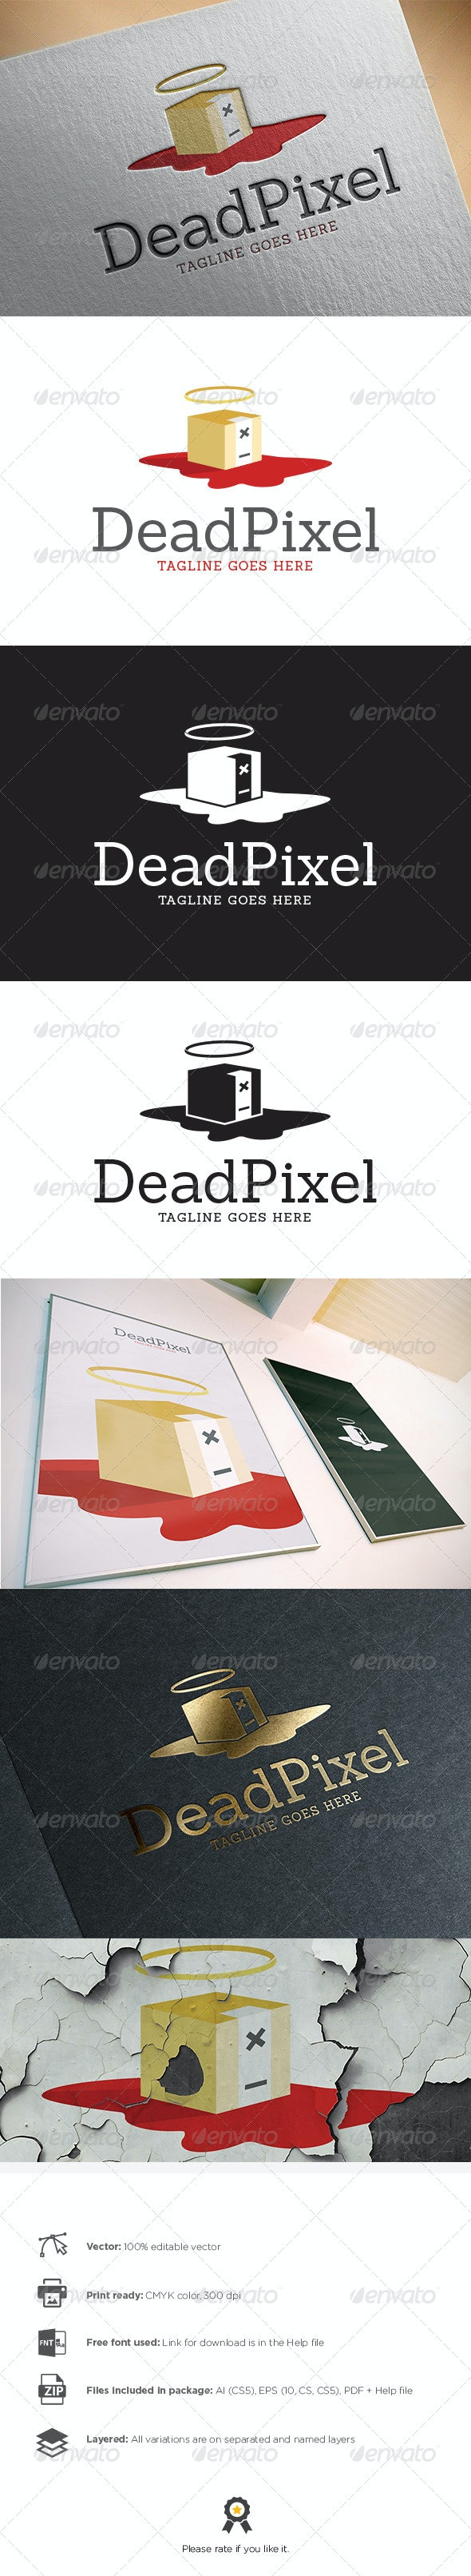 Dead Pixel Logo - Abstract Logo Templates